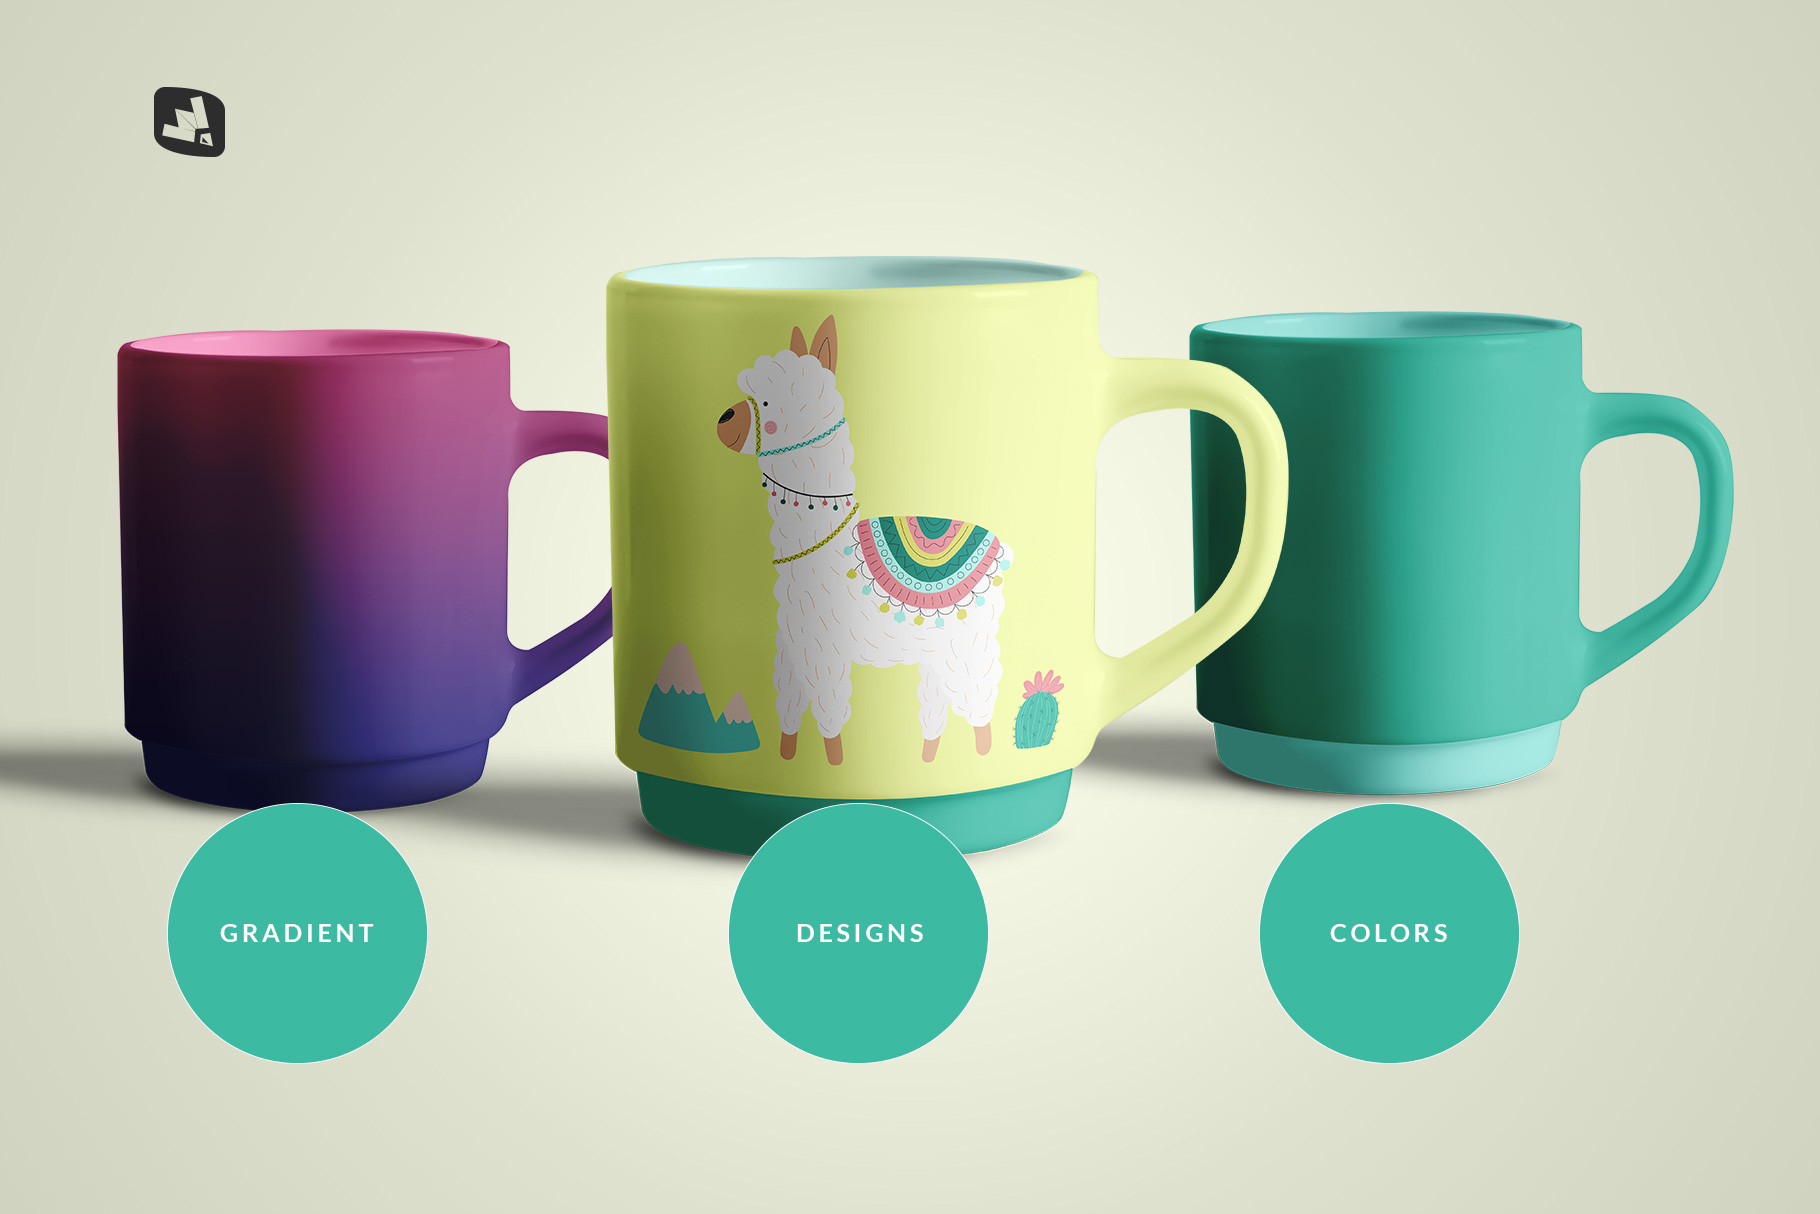 types of the porcelain coffee cups set mockup